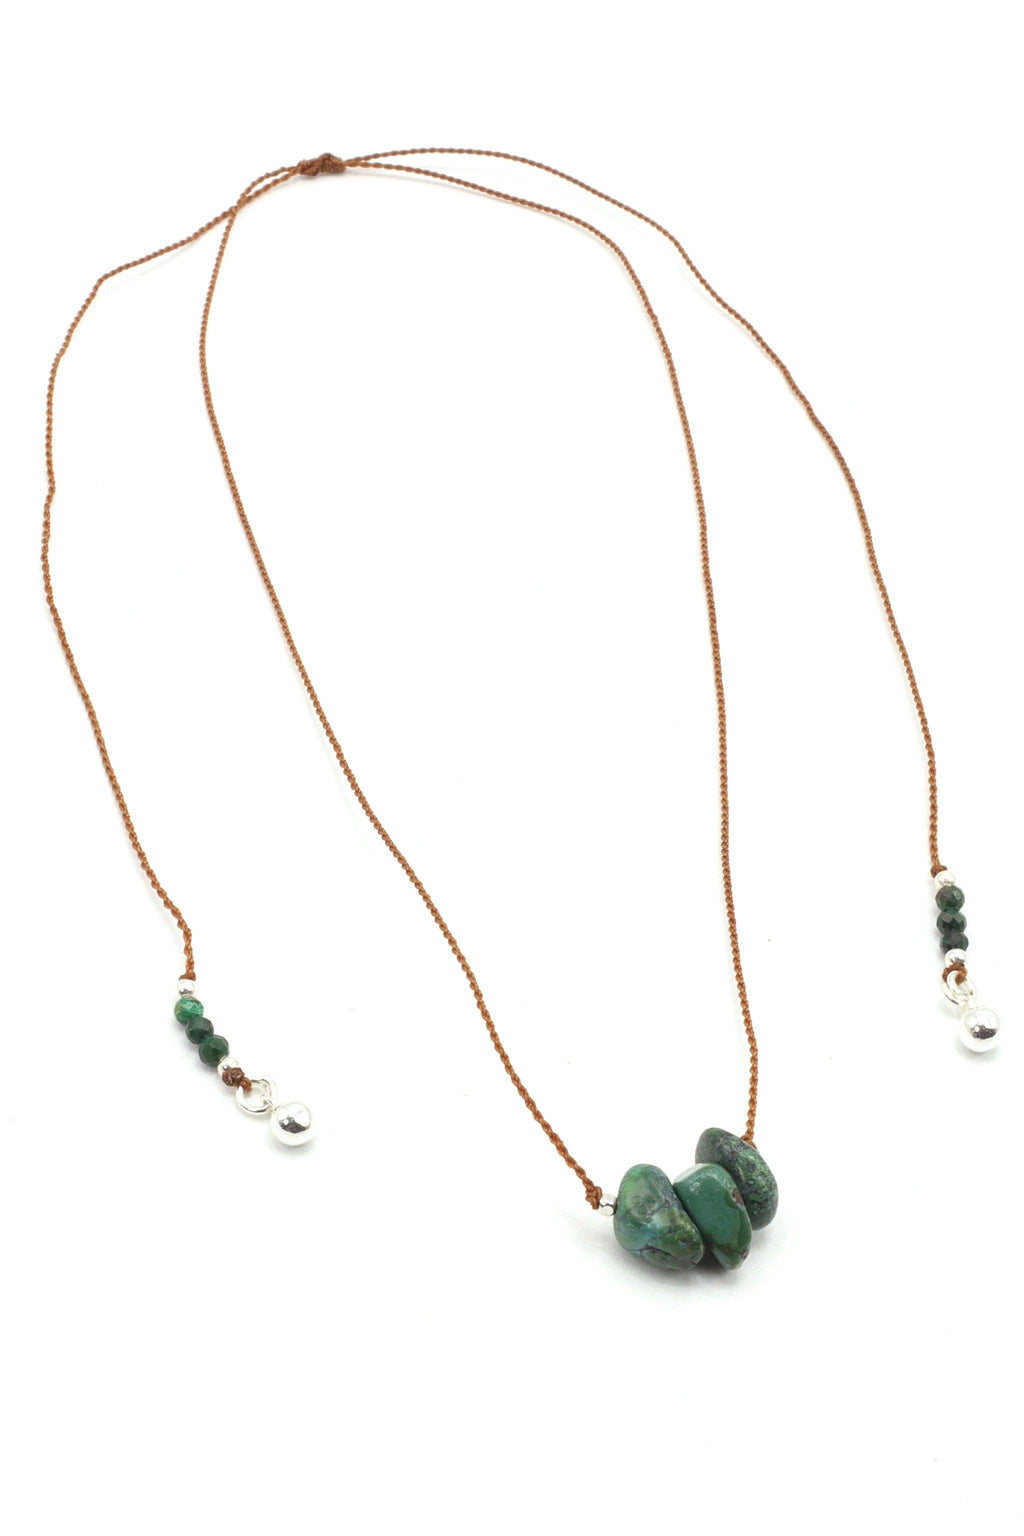 This gemstone choker Necklace is made with tumbled chrysocolla gemstones on a silk cord that has an adjustable slide knot, allowing you to wear this necklace as a comfortable choker.   This necklace is so simple, yet totally powerful. You could call it a Goddess Gemstone Necklace because it's frequency increases one's capacity to love, gain personal power, and have self-awareness. When you wear it at your throat chakra you will speak your truth, from your heart, with wise communication.